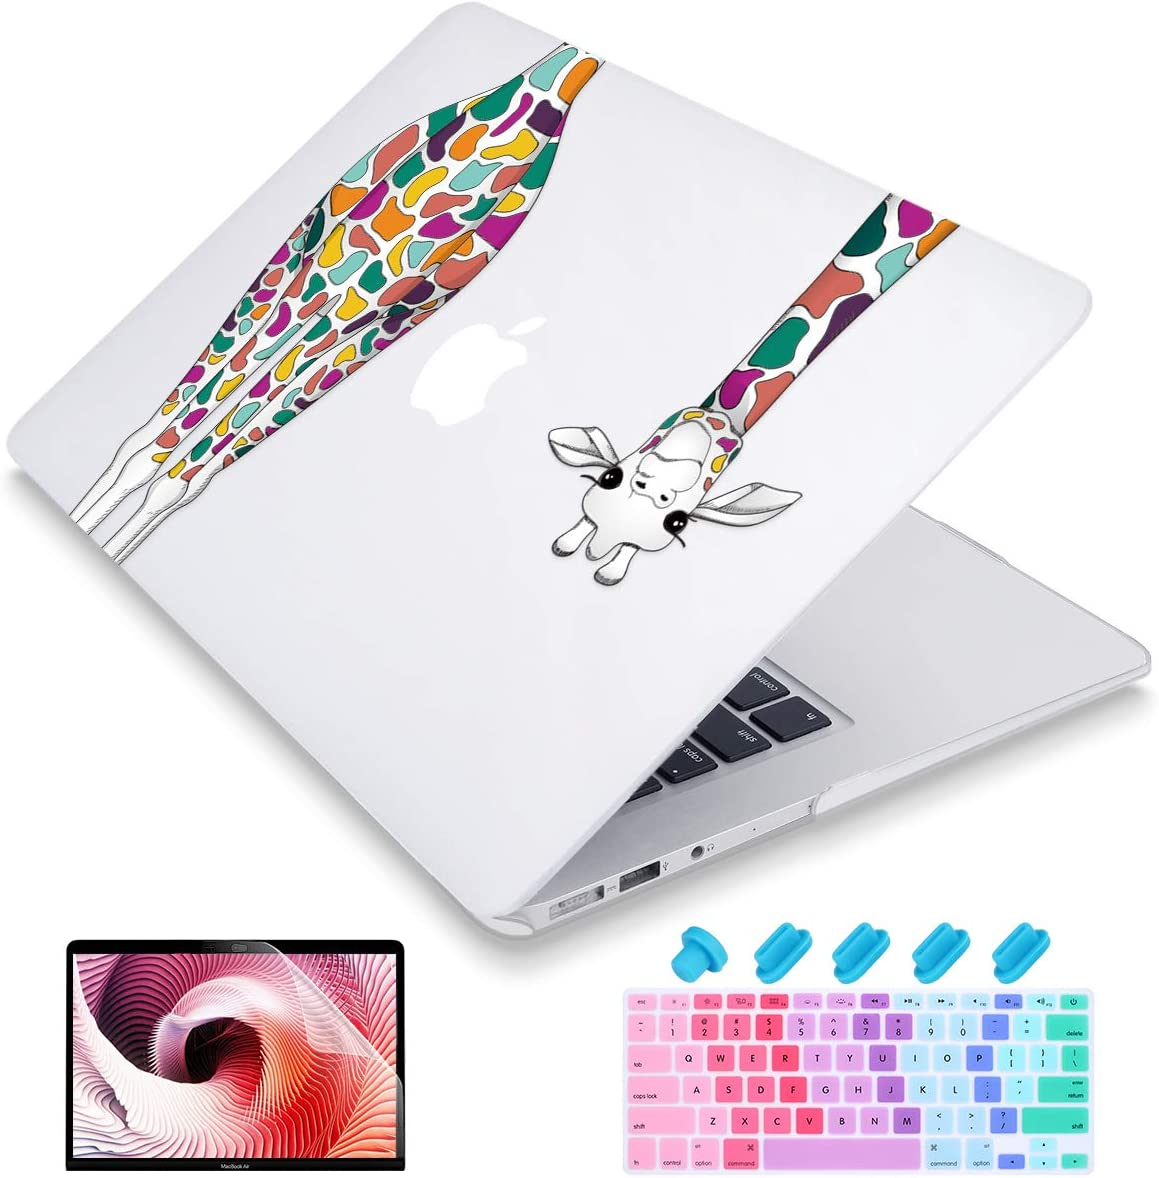 Maychen MacBook Air 13 Inch Case A1466 A1369 Old Version 2010 2017, 4 in 1 Keyboard Cover +Screen Protector + Dust Plug Matte Clear Plastic Hard Shell Case for Old Air 13 - Colorful Giraffe